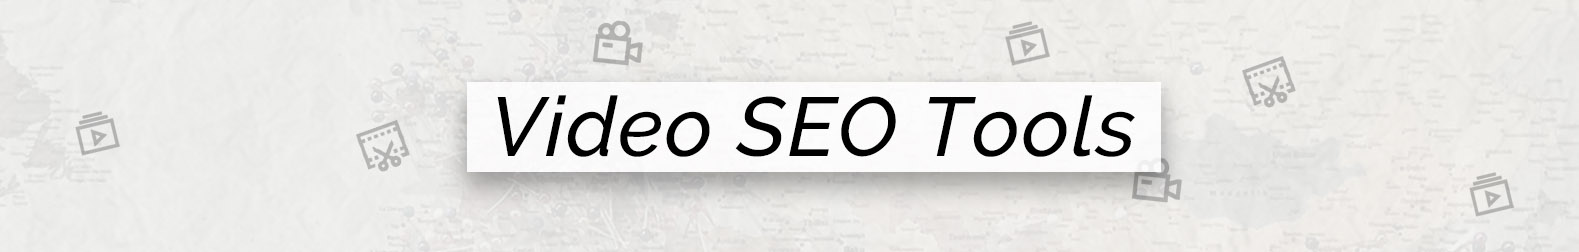 04 video seo tools banner.jpg